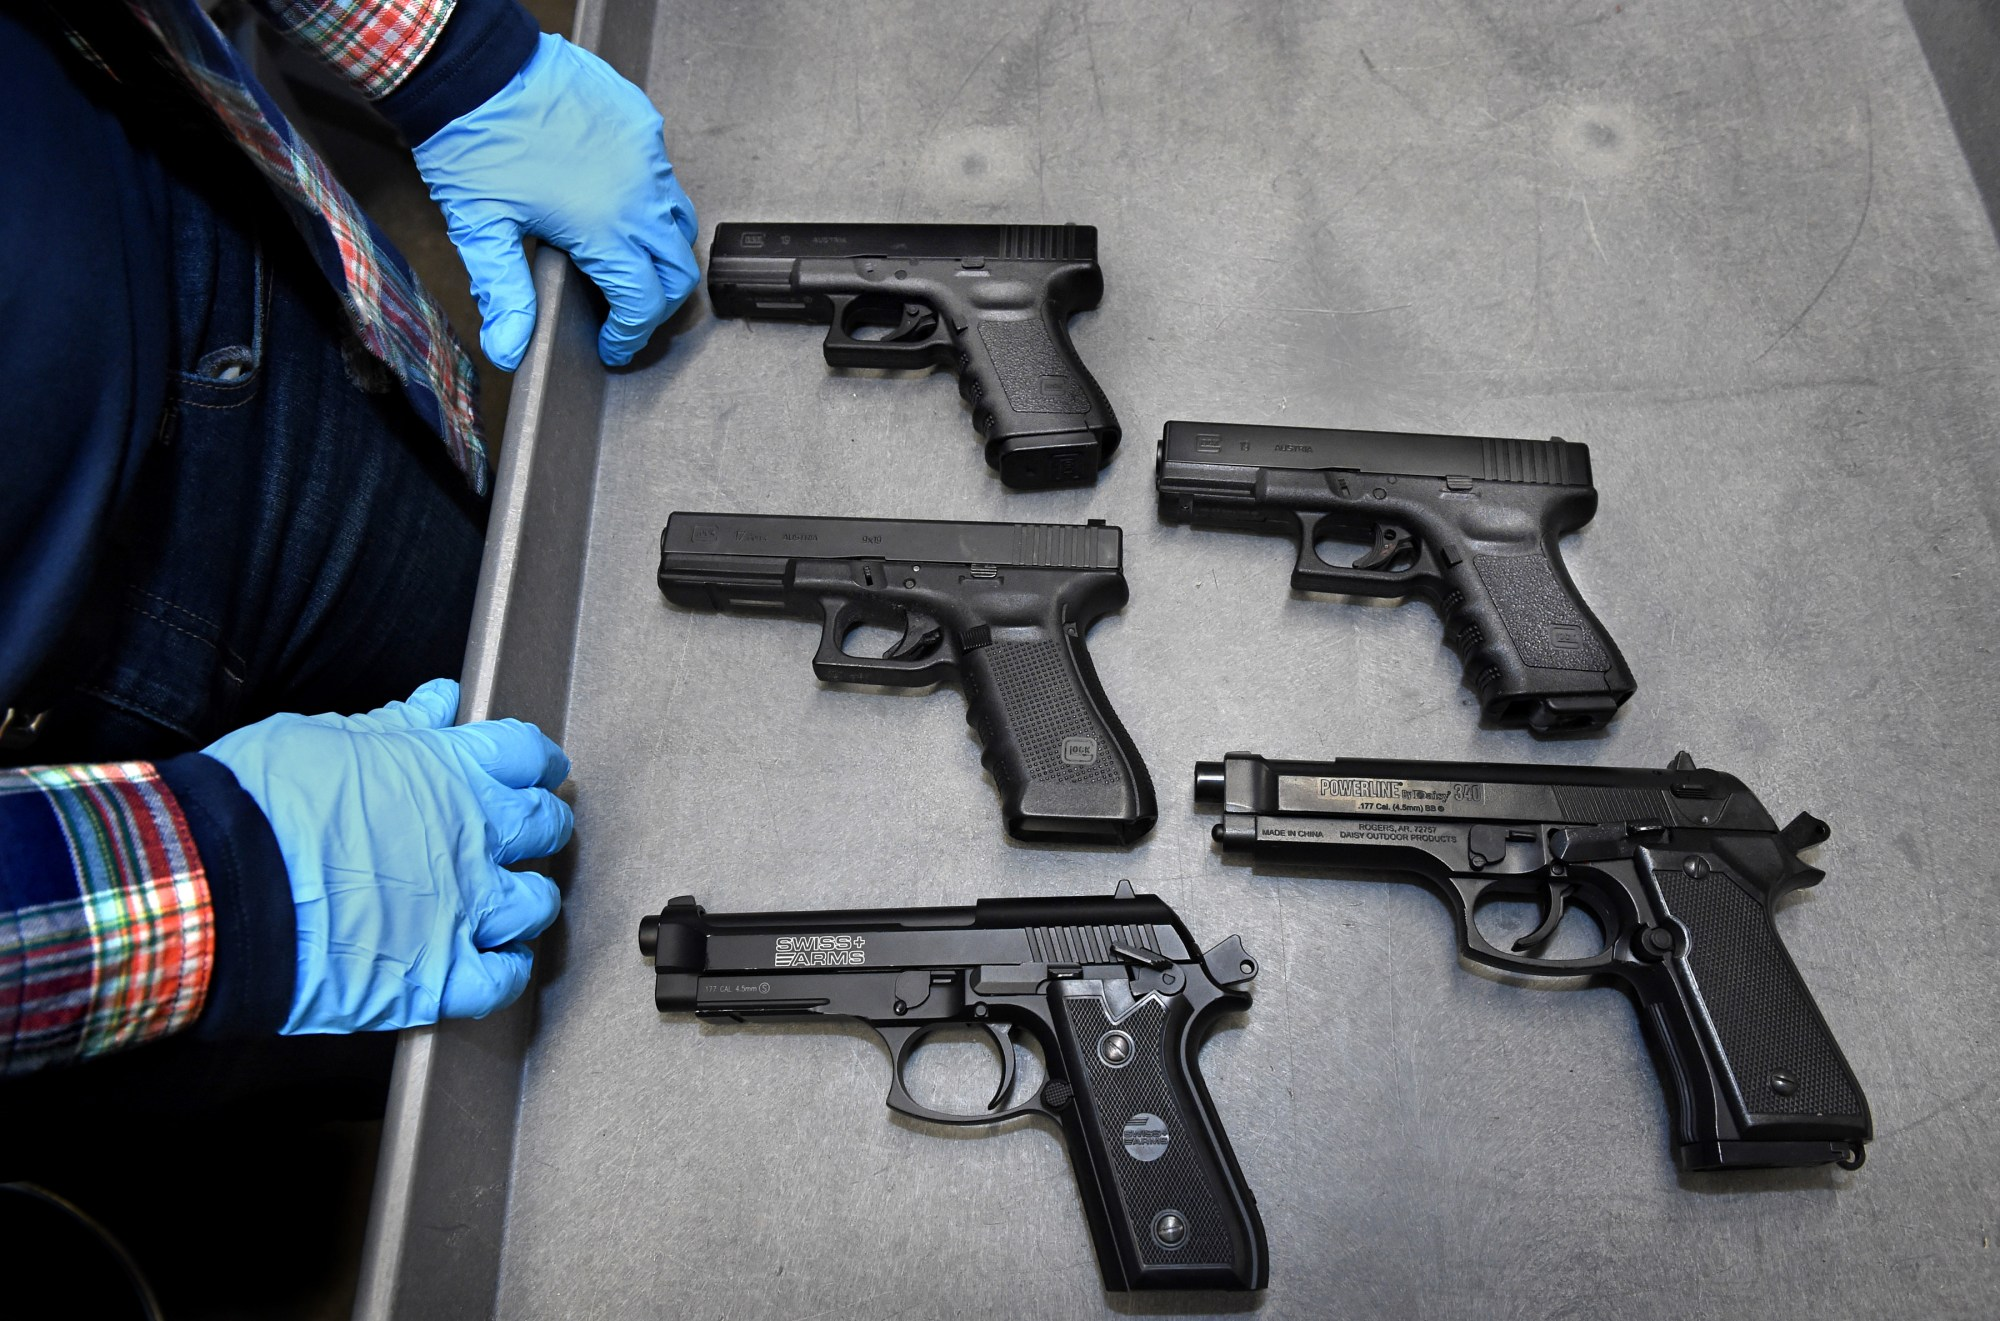 hight resolution of  where is the real gun asks st paul police sgt tina kill as she shows her service duty weapon along with four real looking bb guns that were collected